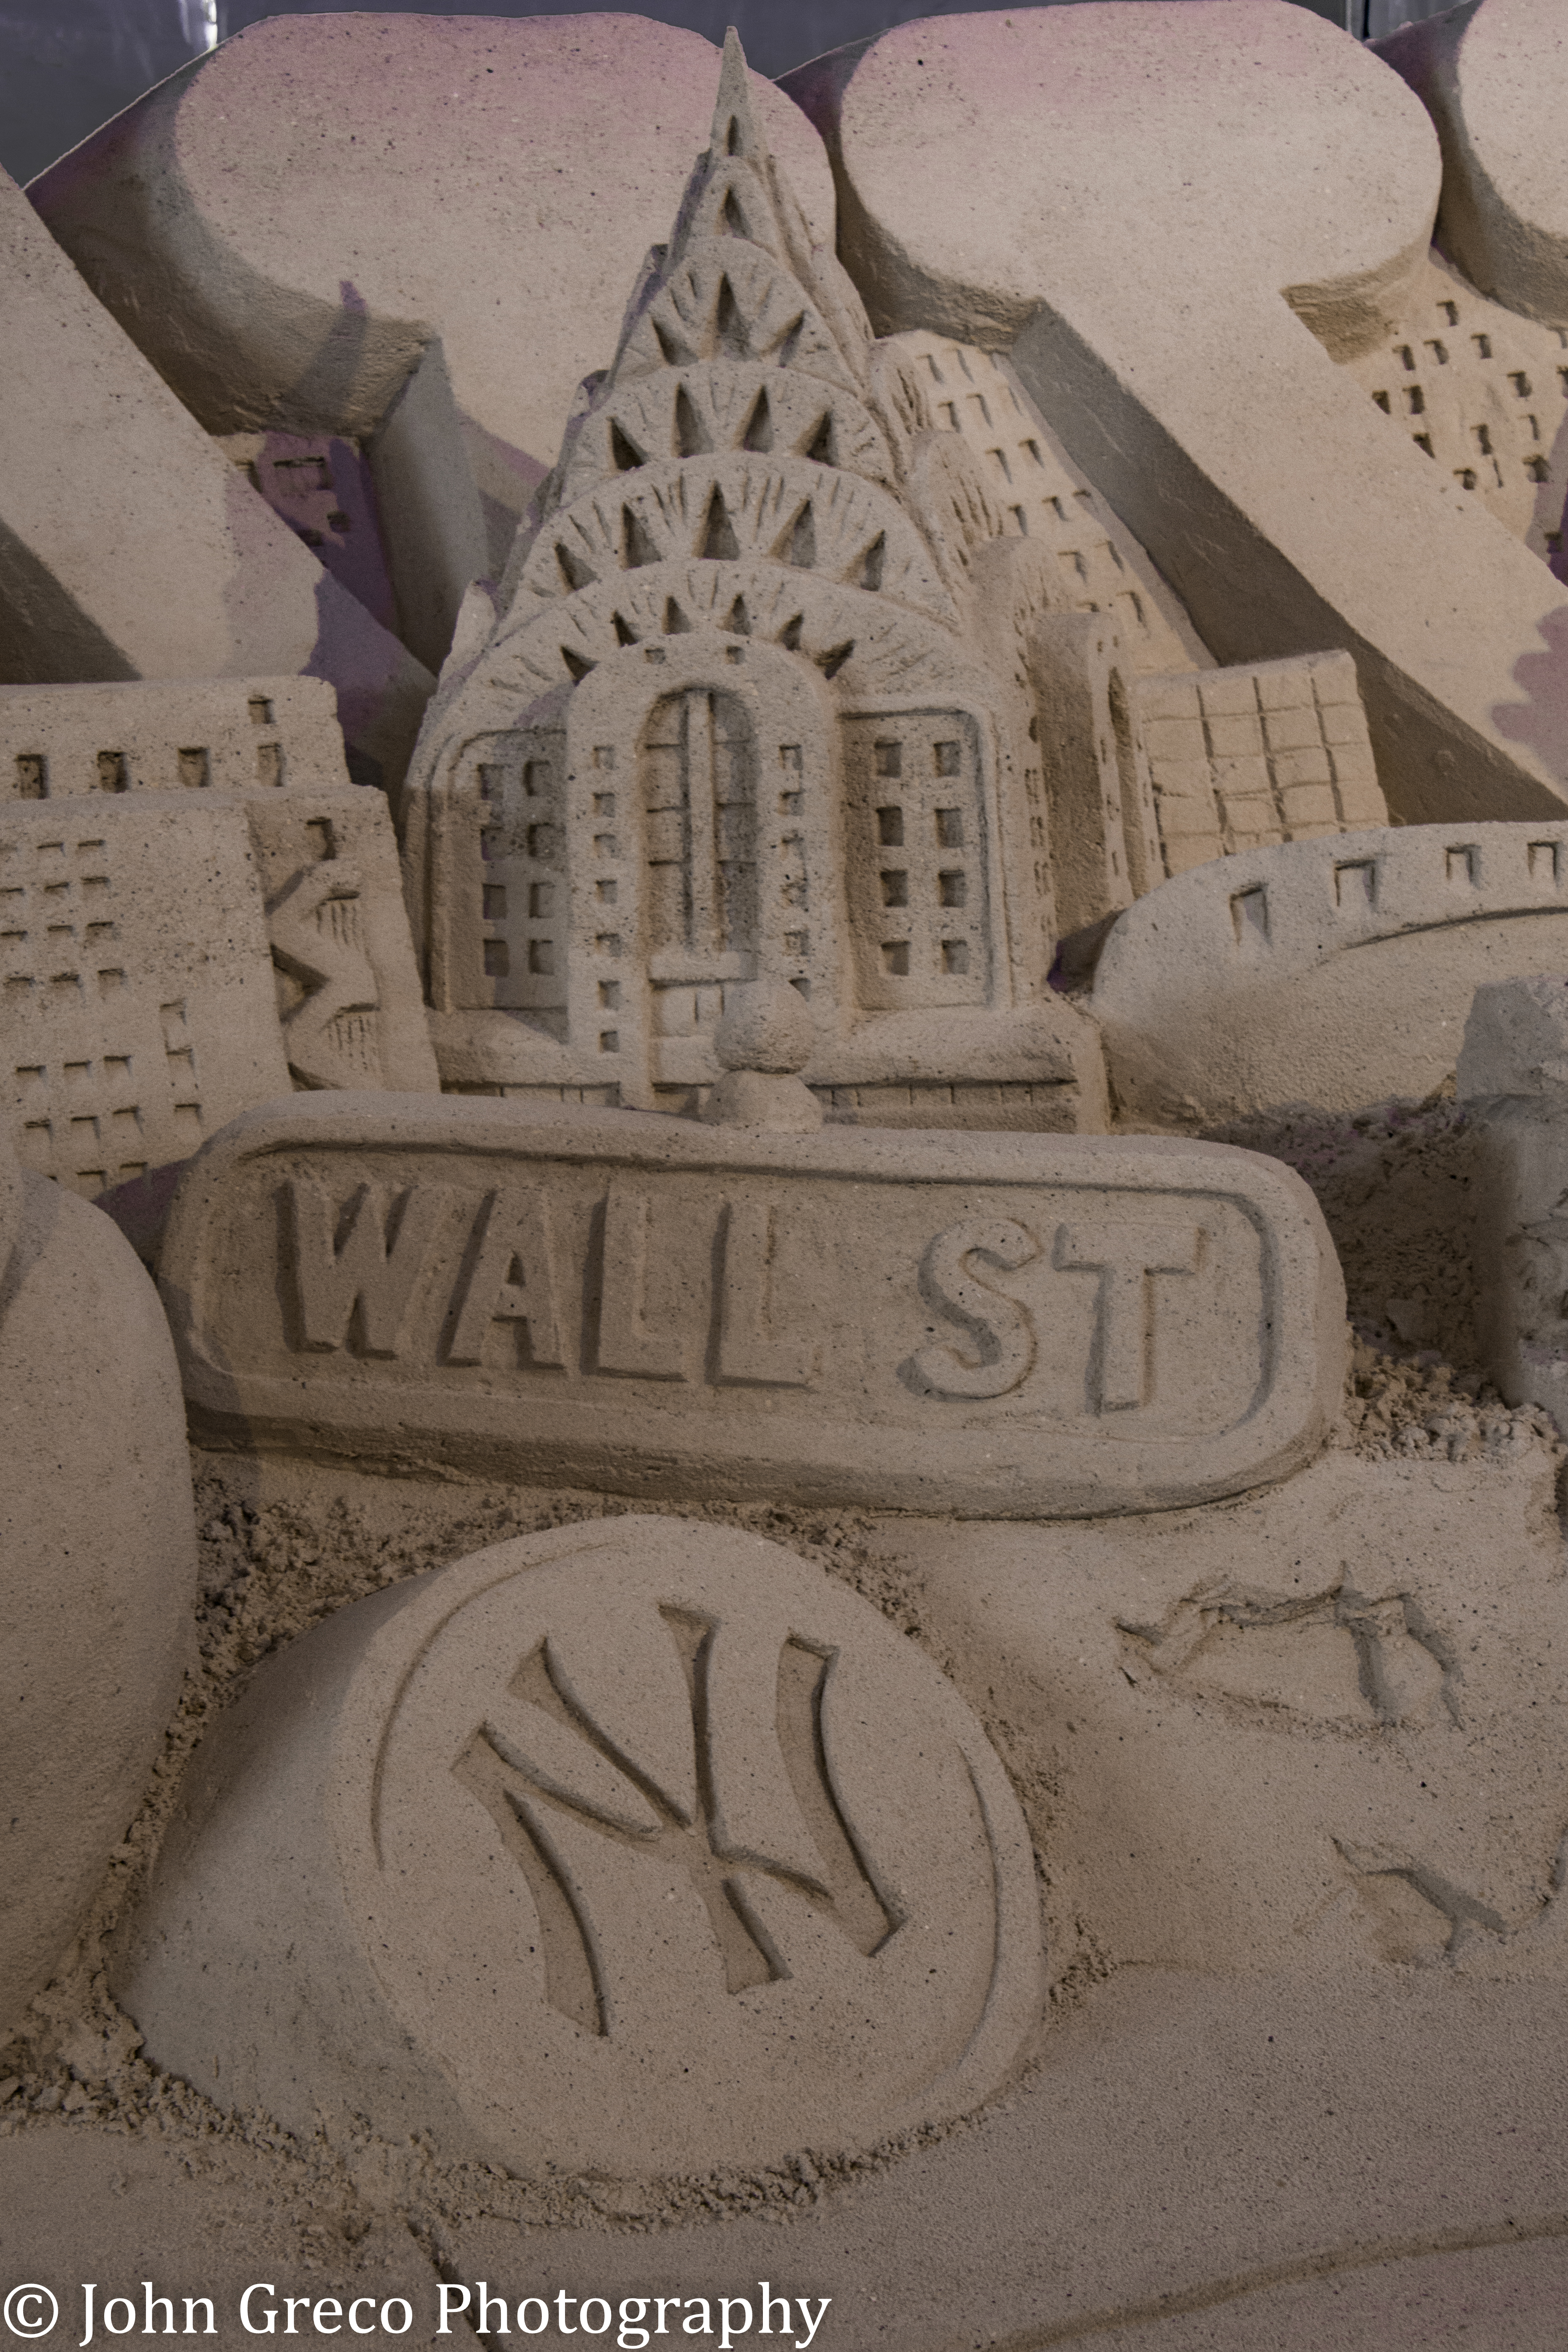 Wall St-3779